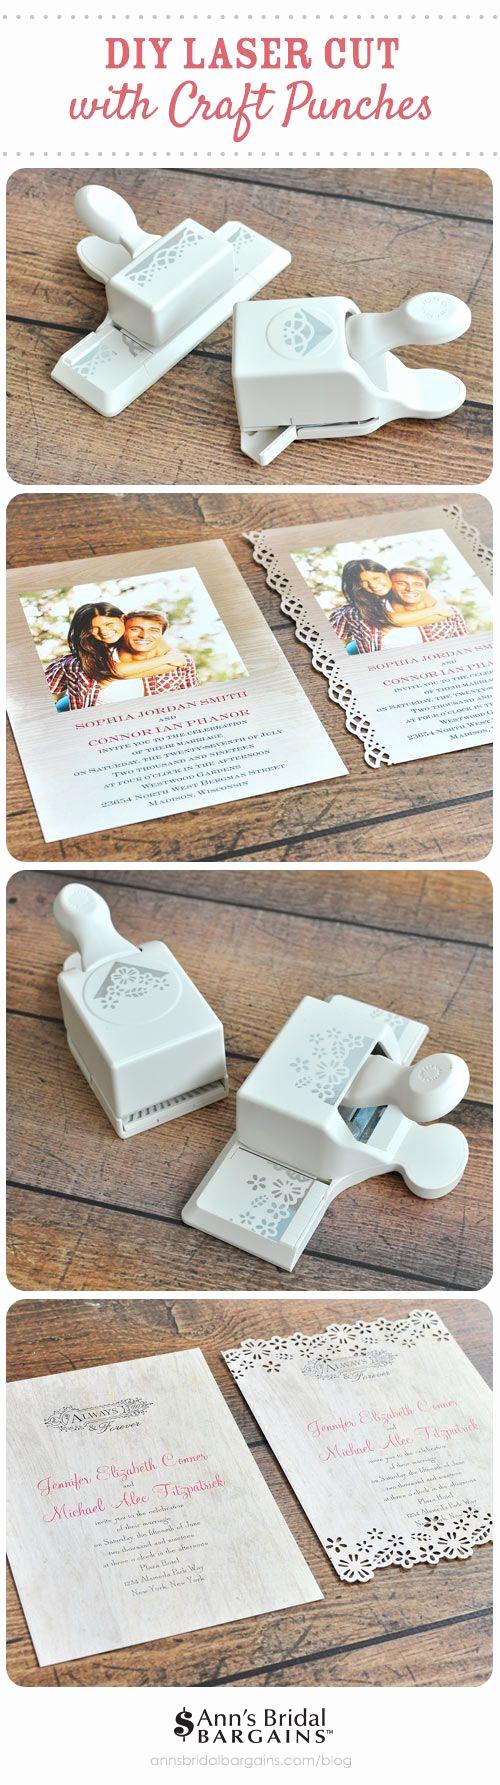 Wedding Invitation Ideas Diy Unique 25 Best Ideas About Expensive Wedding Dress On Pinterest